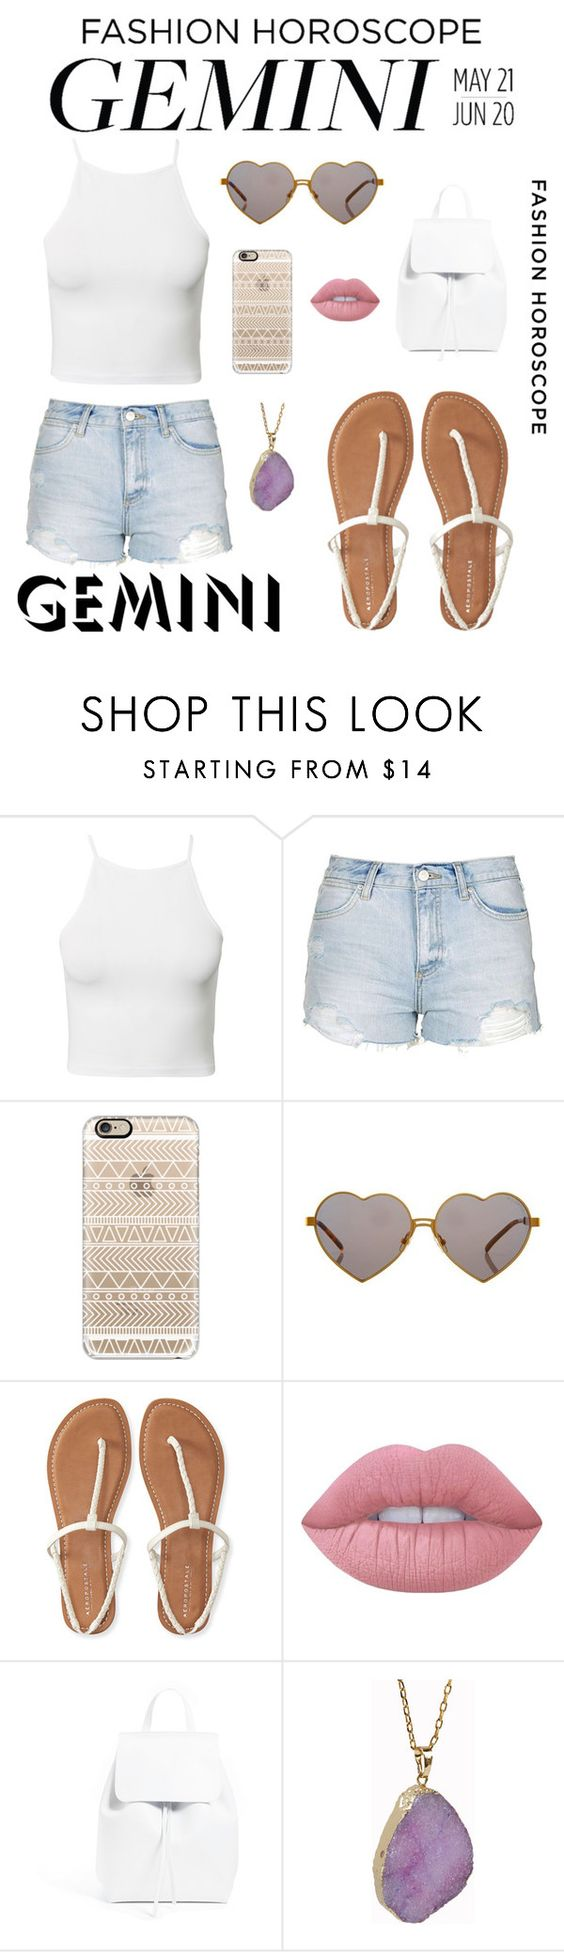 """Summer: Gemini Style"" by zoepaigexo ❤ liked on Polyvore featuring NLY Trend, Topshop, Casetify, Wildfox, Aéropostale, Lime Crime, Mansur Gavriel, Helix & Felix, fashionhoroscope and stylehoroscope"